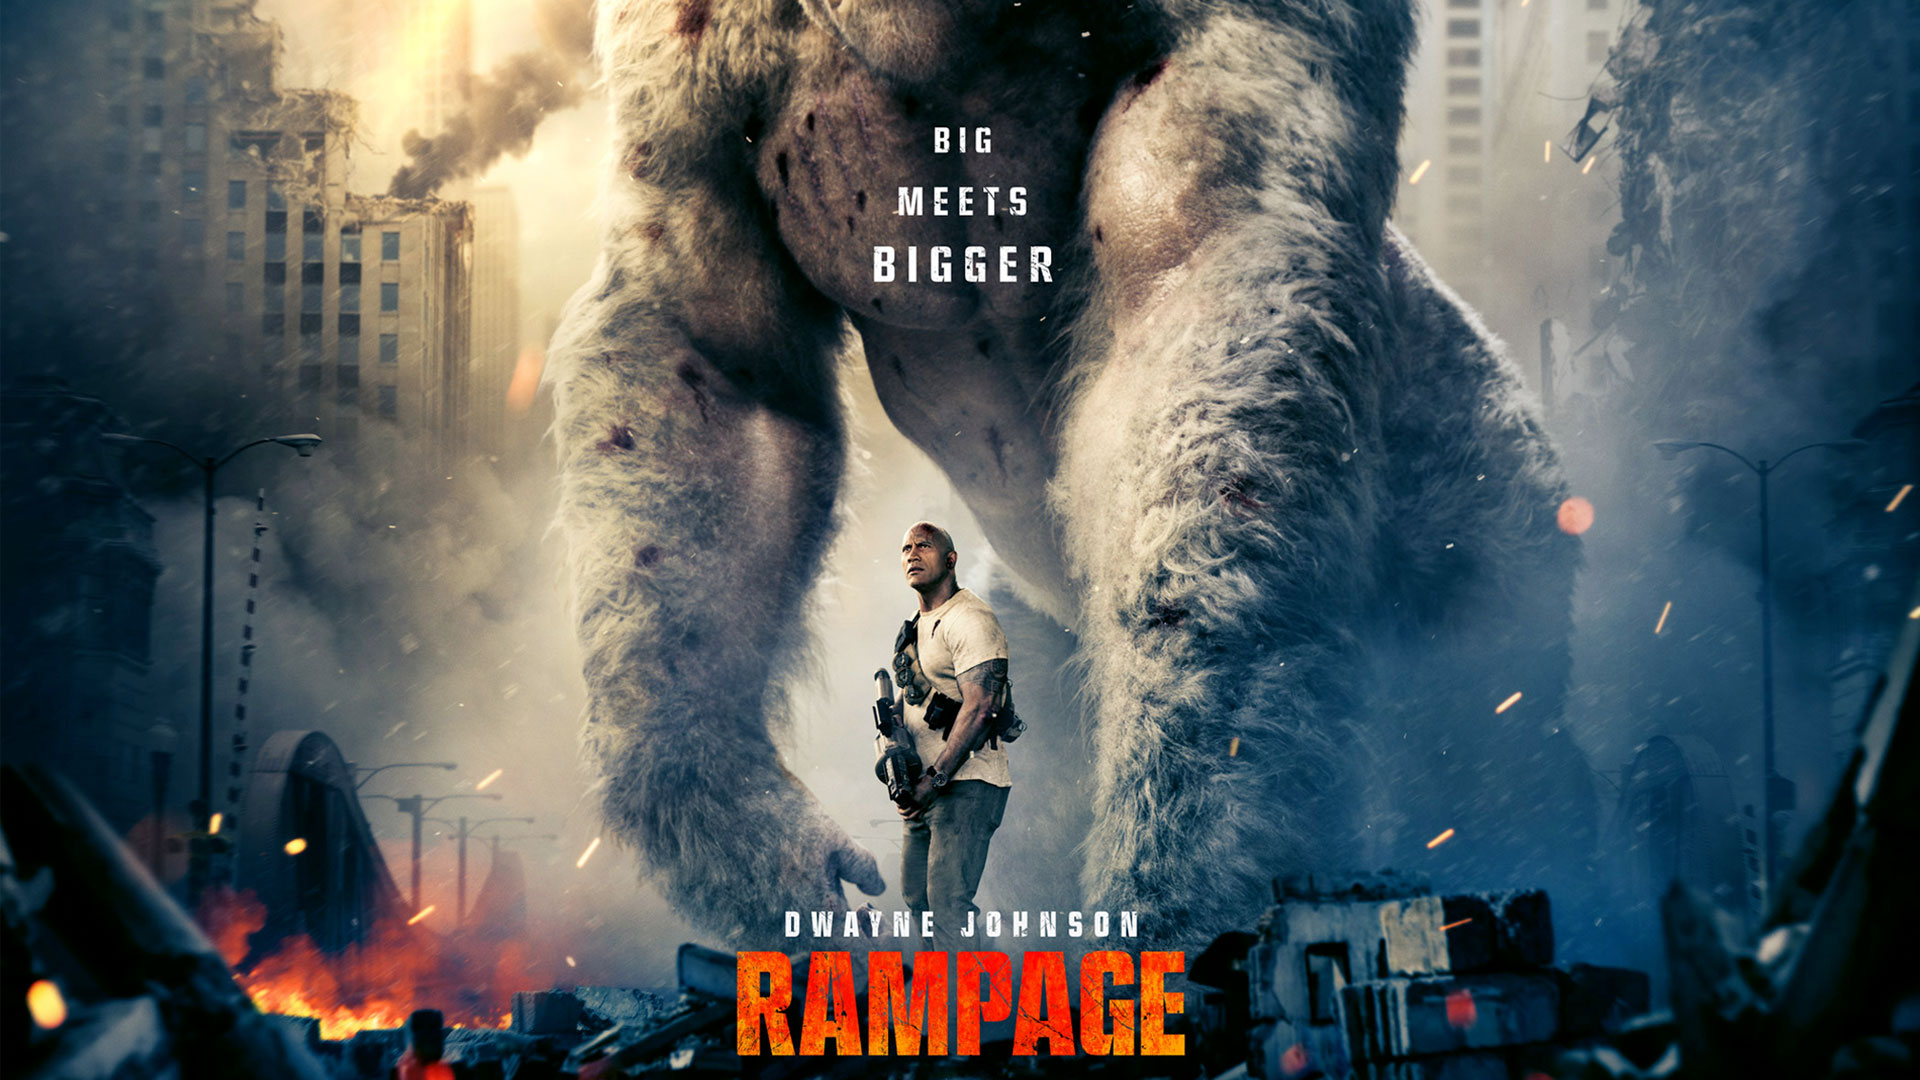 Blu-rays from $11: Rampage, Maze Runner The Scorch Trials 4K, Halloween 4K, Tag, more